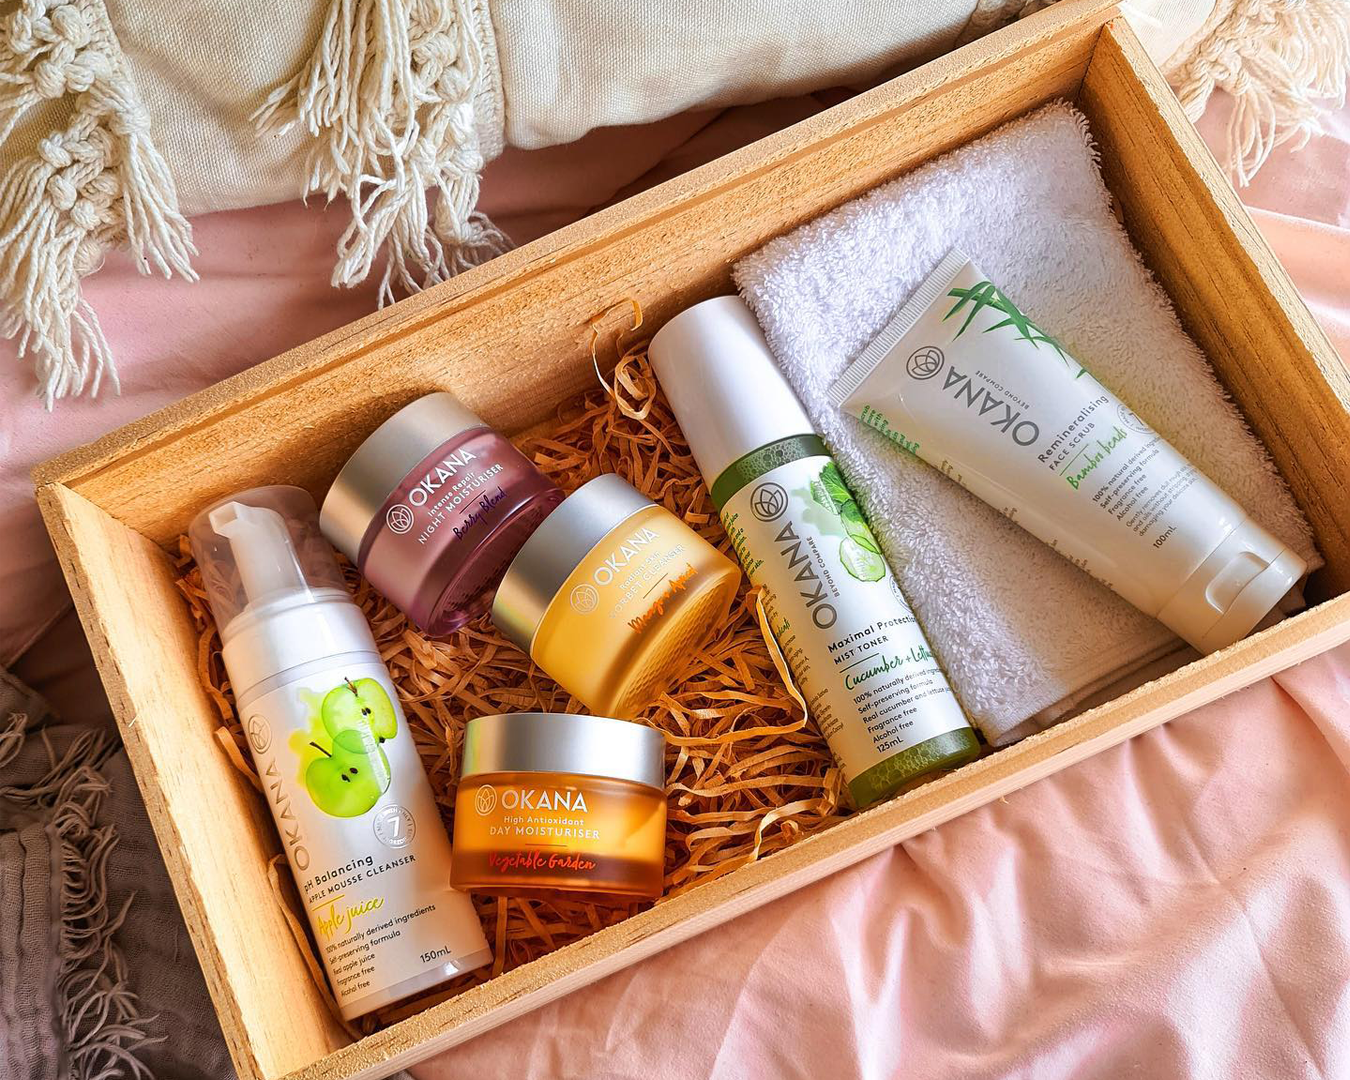 A wooden gift box containing bottles and pottles of pastel colours natural skincare